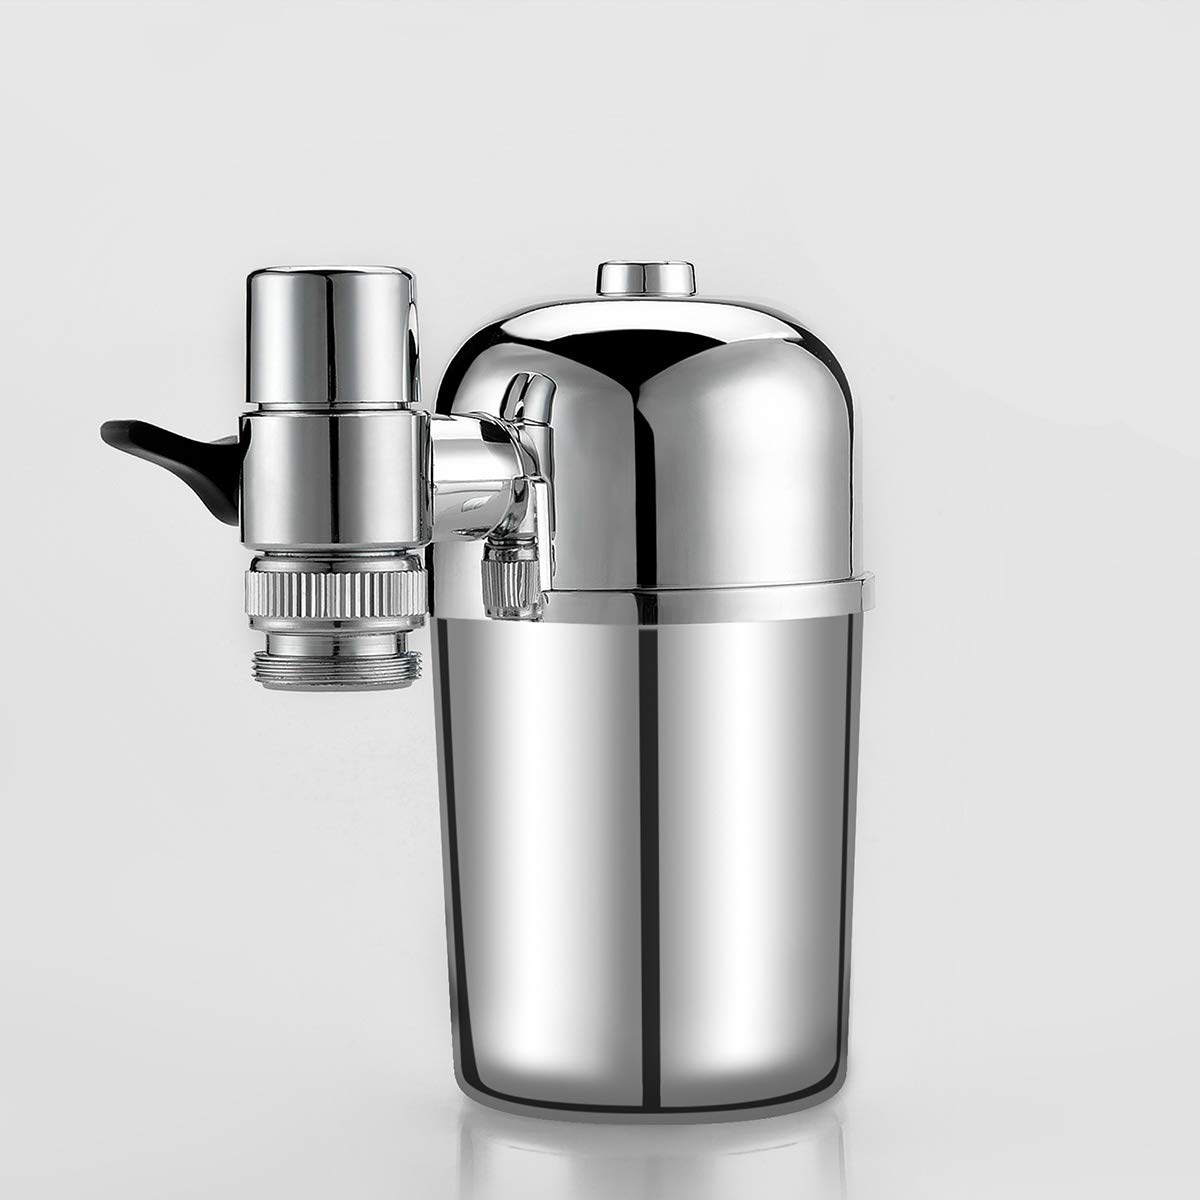 Advanced Faucet Water Filter, Ceramic, Suitable for Standard Faucet, Easy to Install, no Tools Required, Electroplate Household Water Purifier Kitchen Purifier Faucet Filter Household